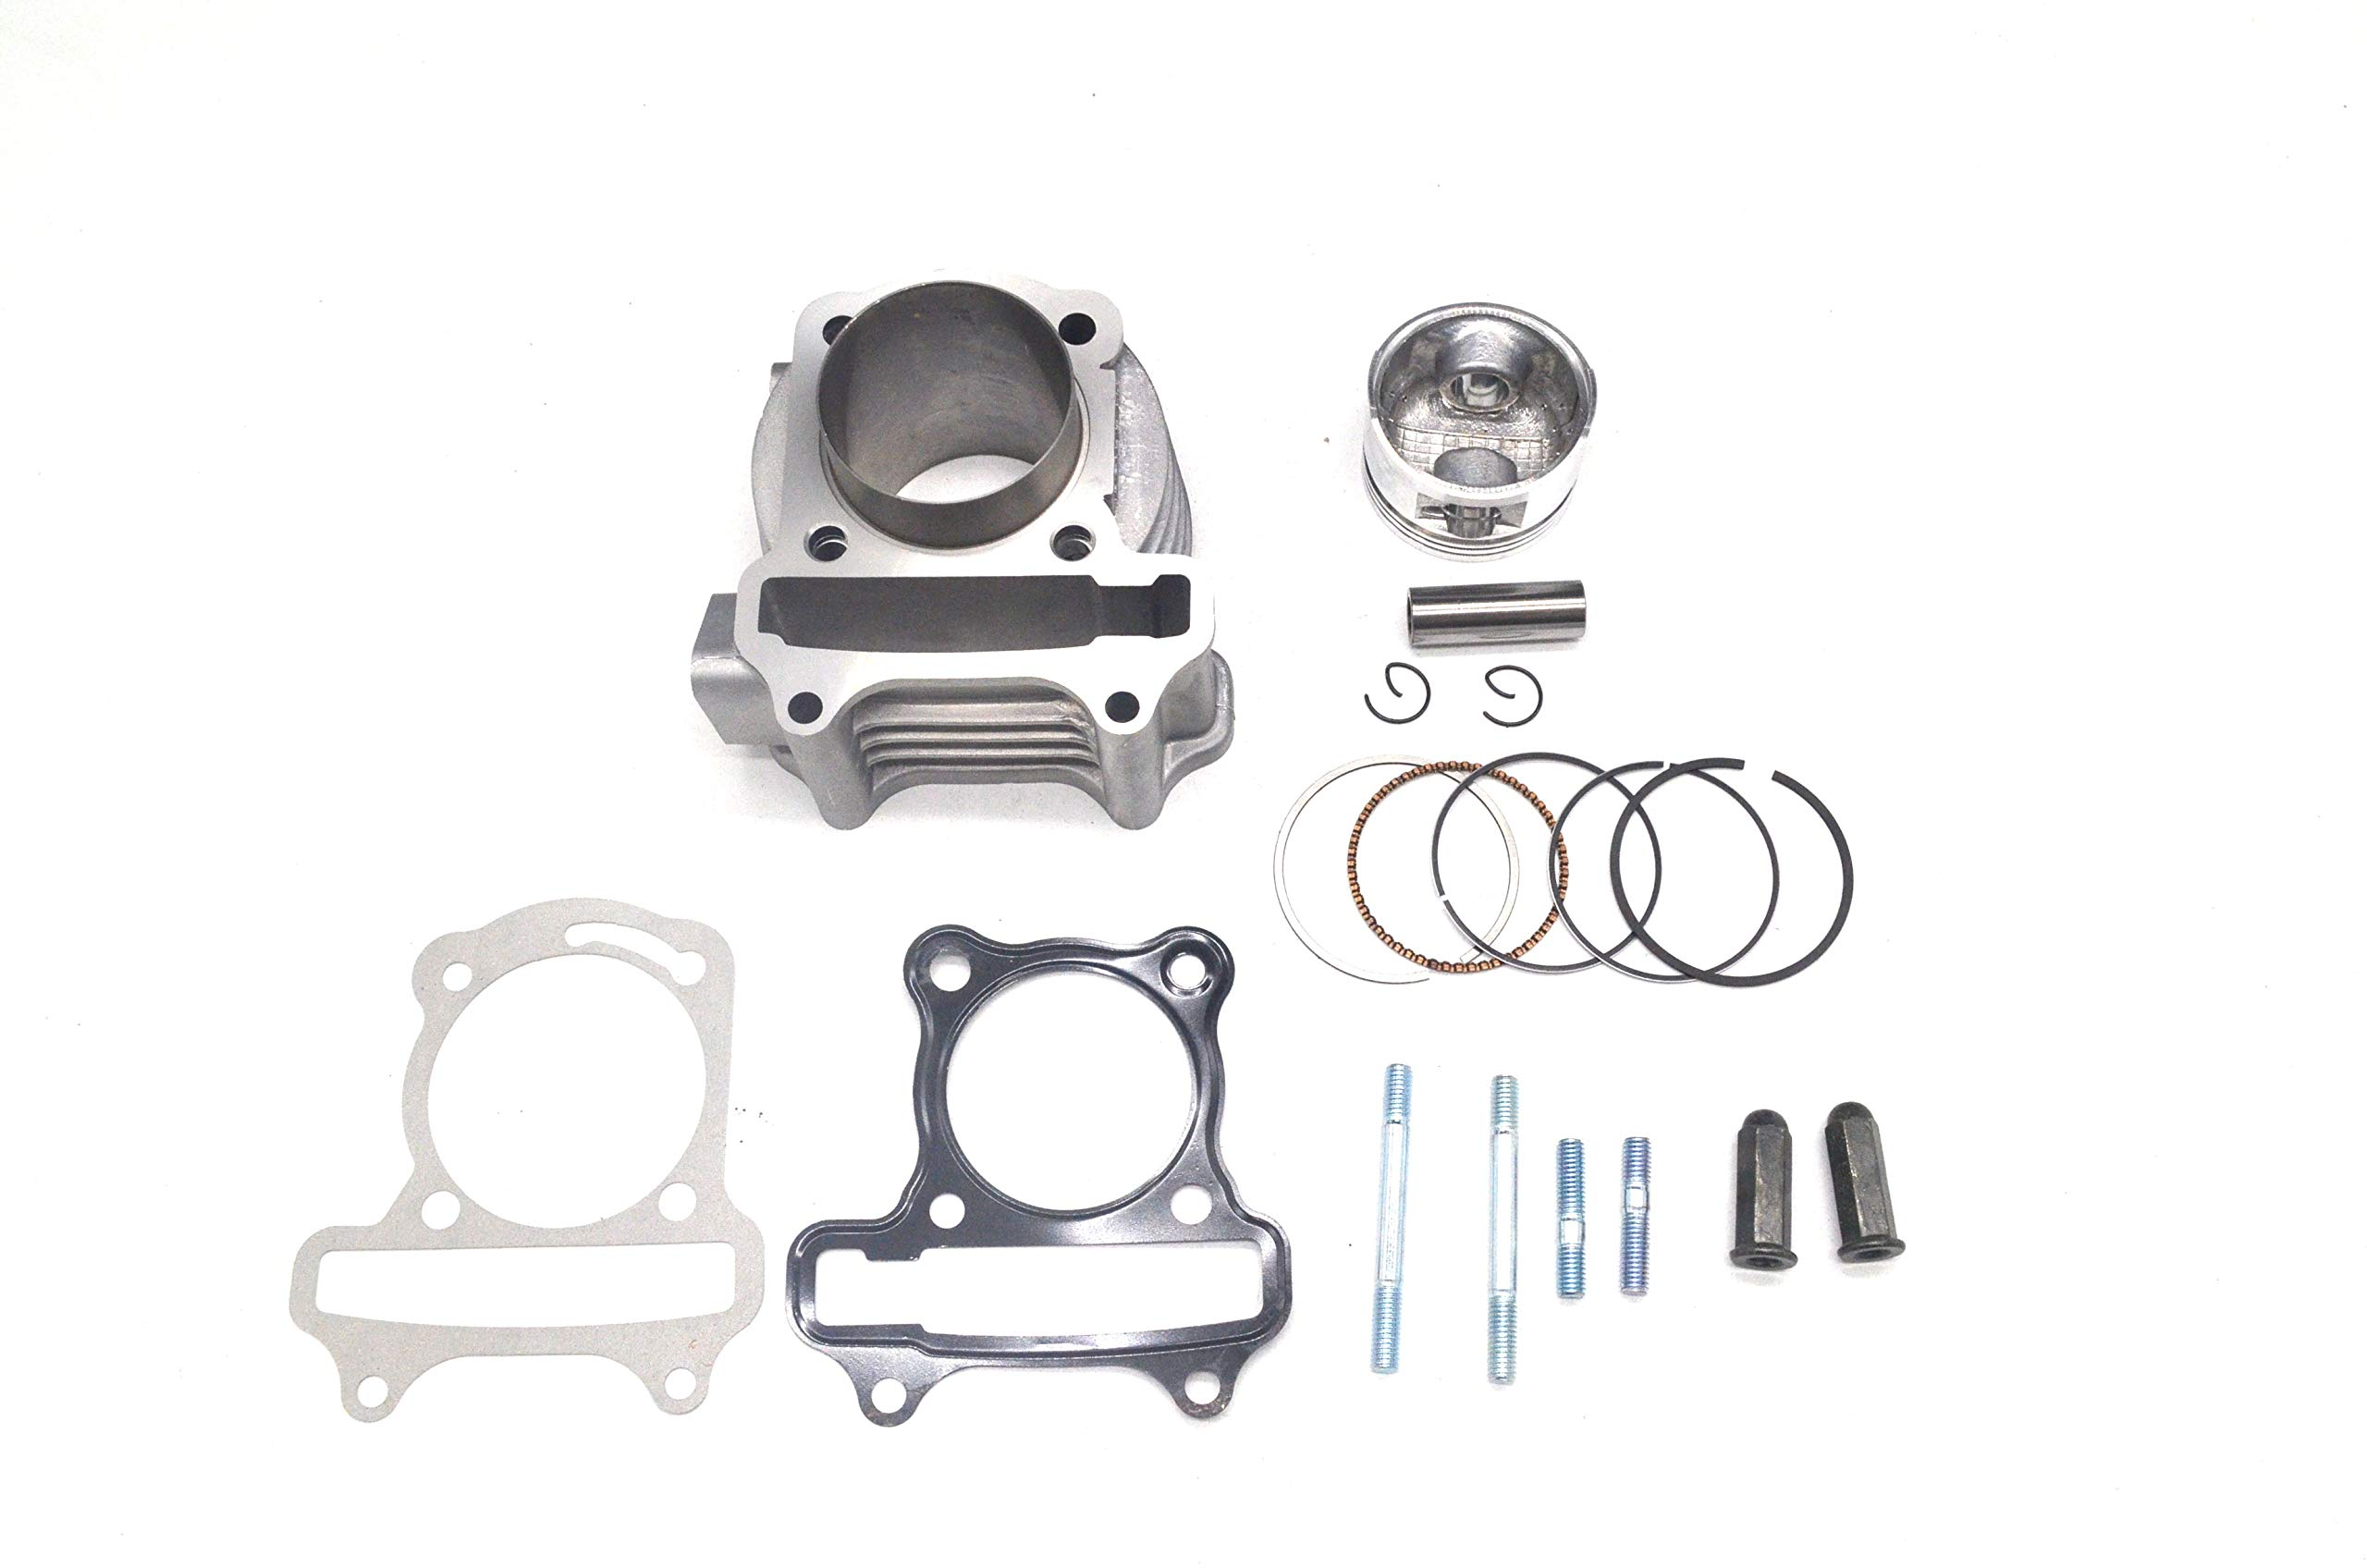 Chanoc 100cc Big Bore 50mm Cylinder Rebuild Kit for GY6 50cc ATV Moped Scooter 139QMA 139QMB by Chanoc